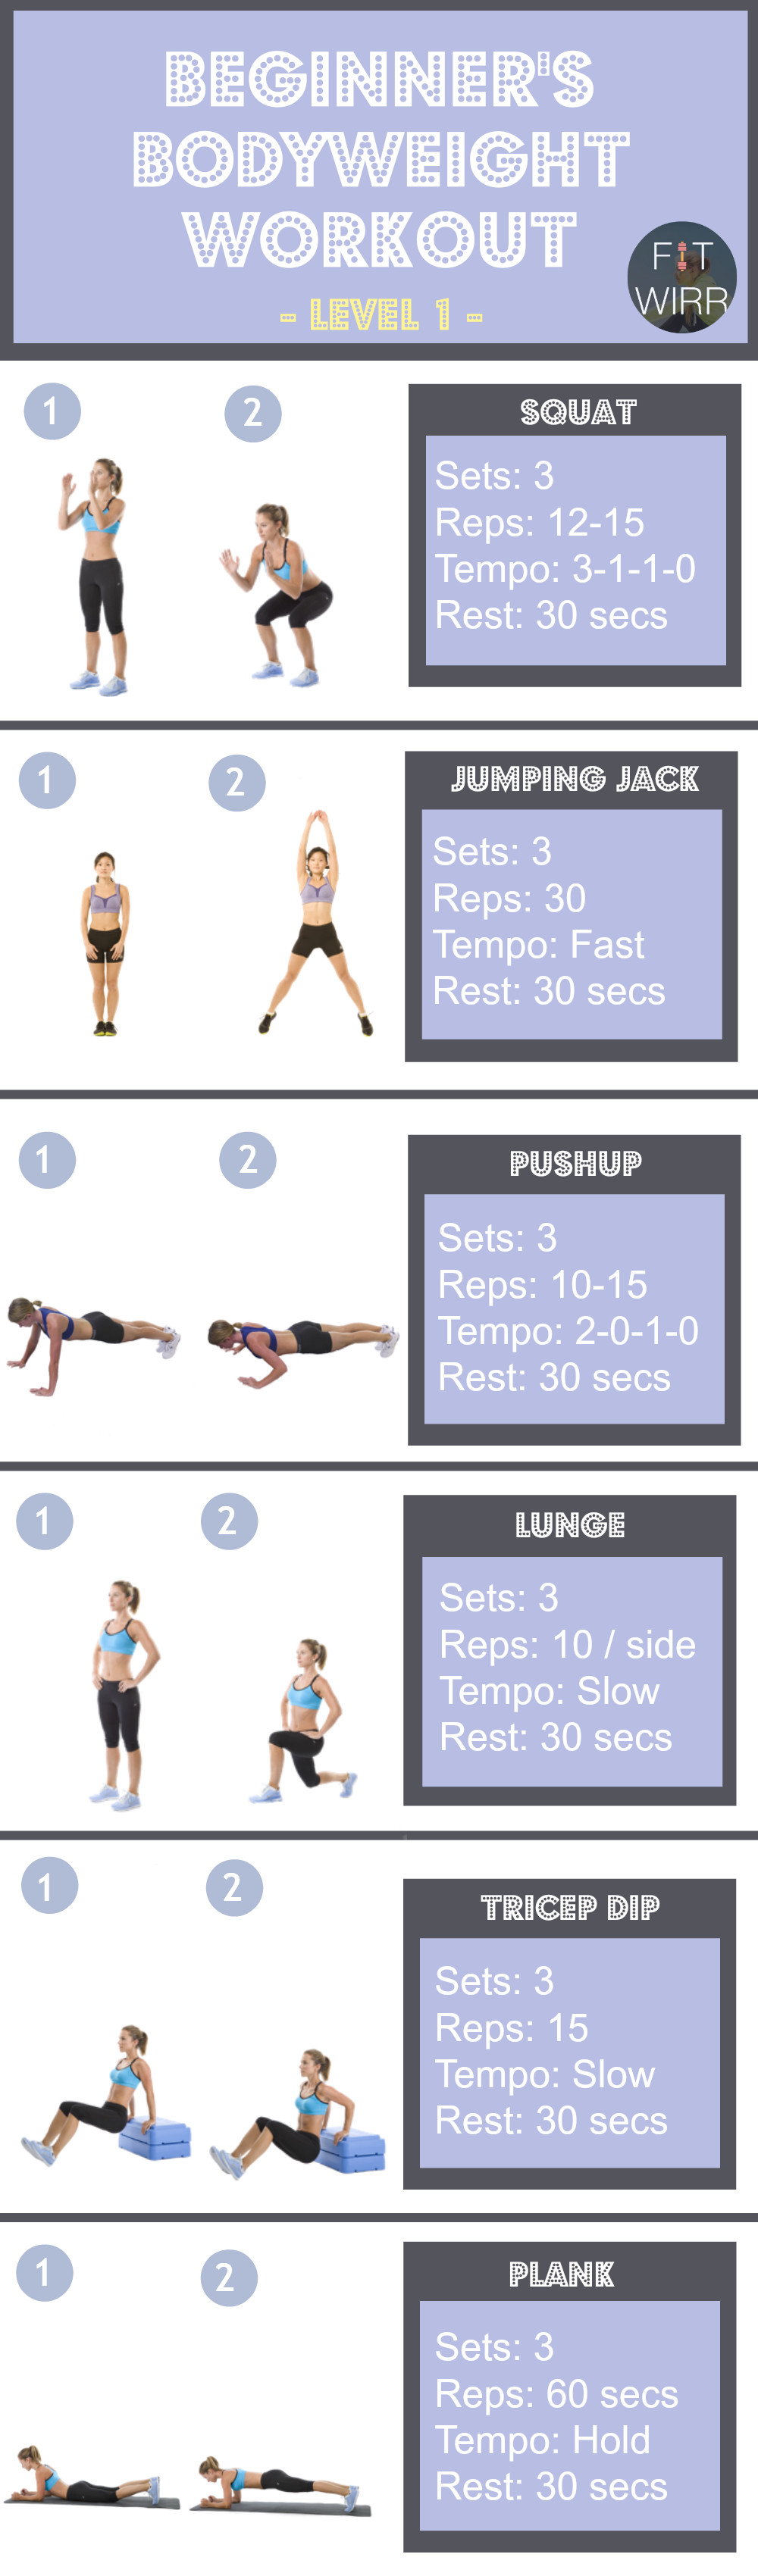 Best Bodyweight Workout For Beginners At Home Fitwirr Bodyweight Workout Beginner Bodyweight Workout Workout Plan For Beginners